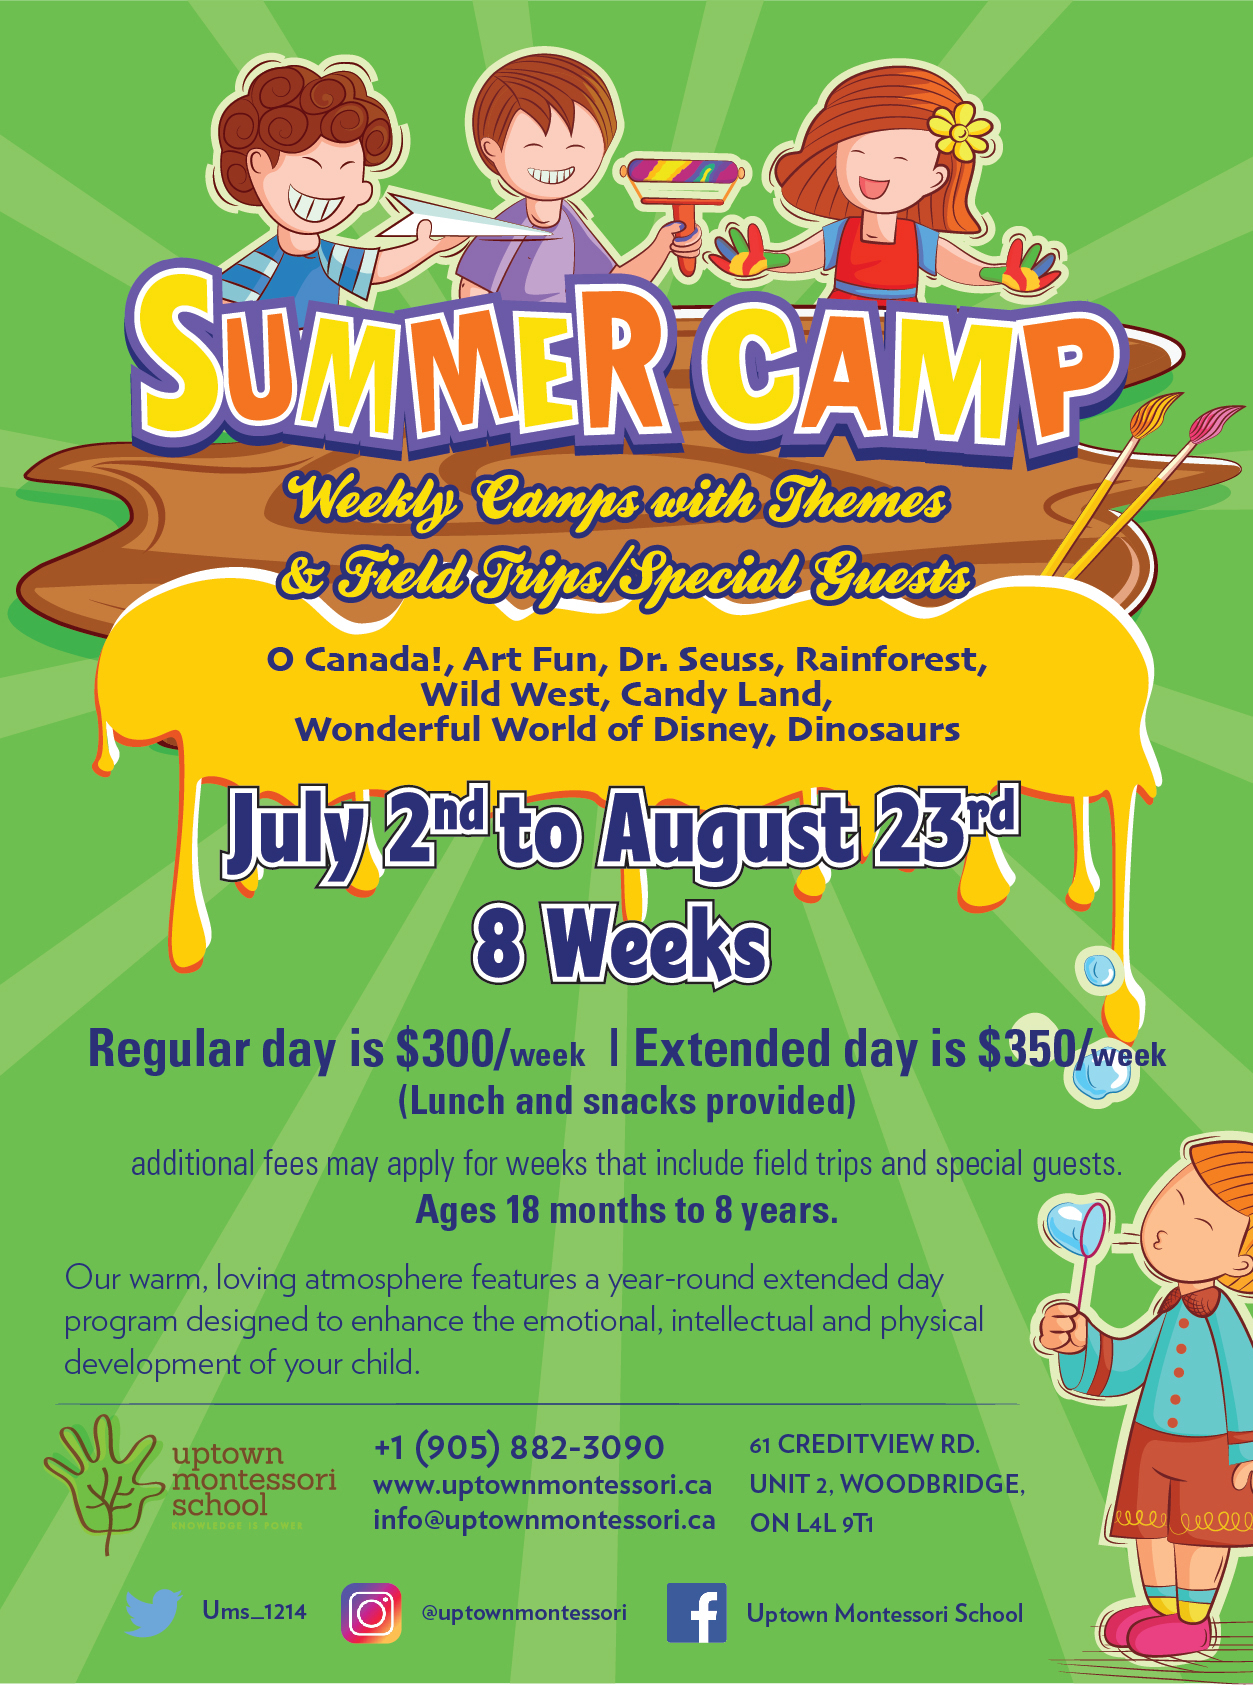 Uptown Montessori School Summer Camp Brochure